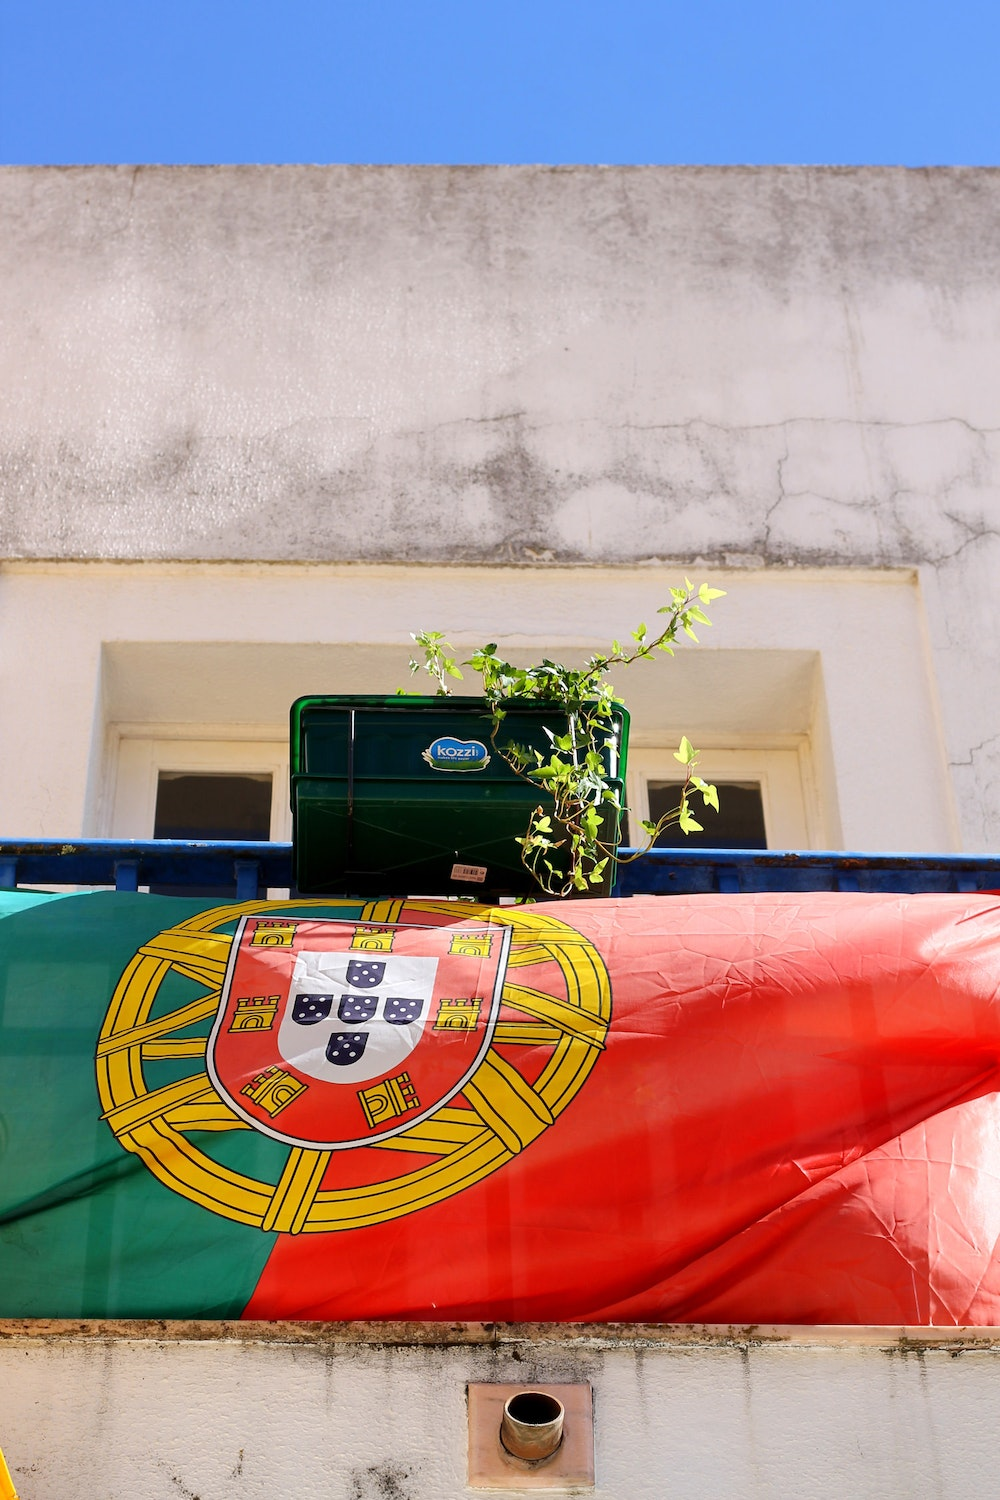 The flag of Portugal